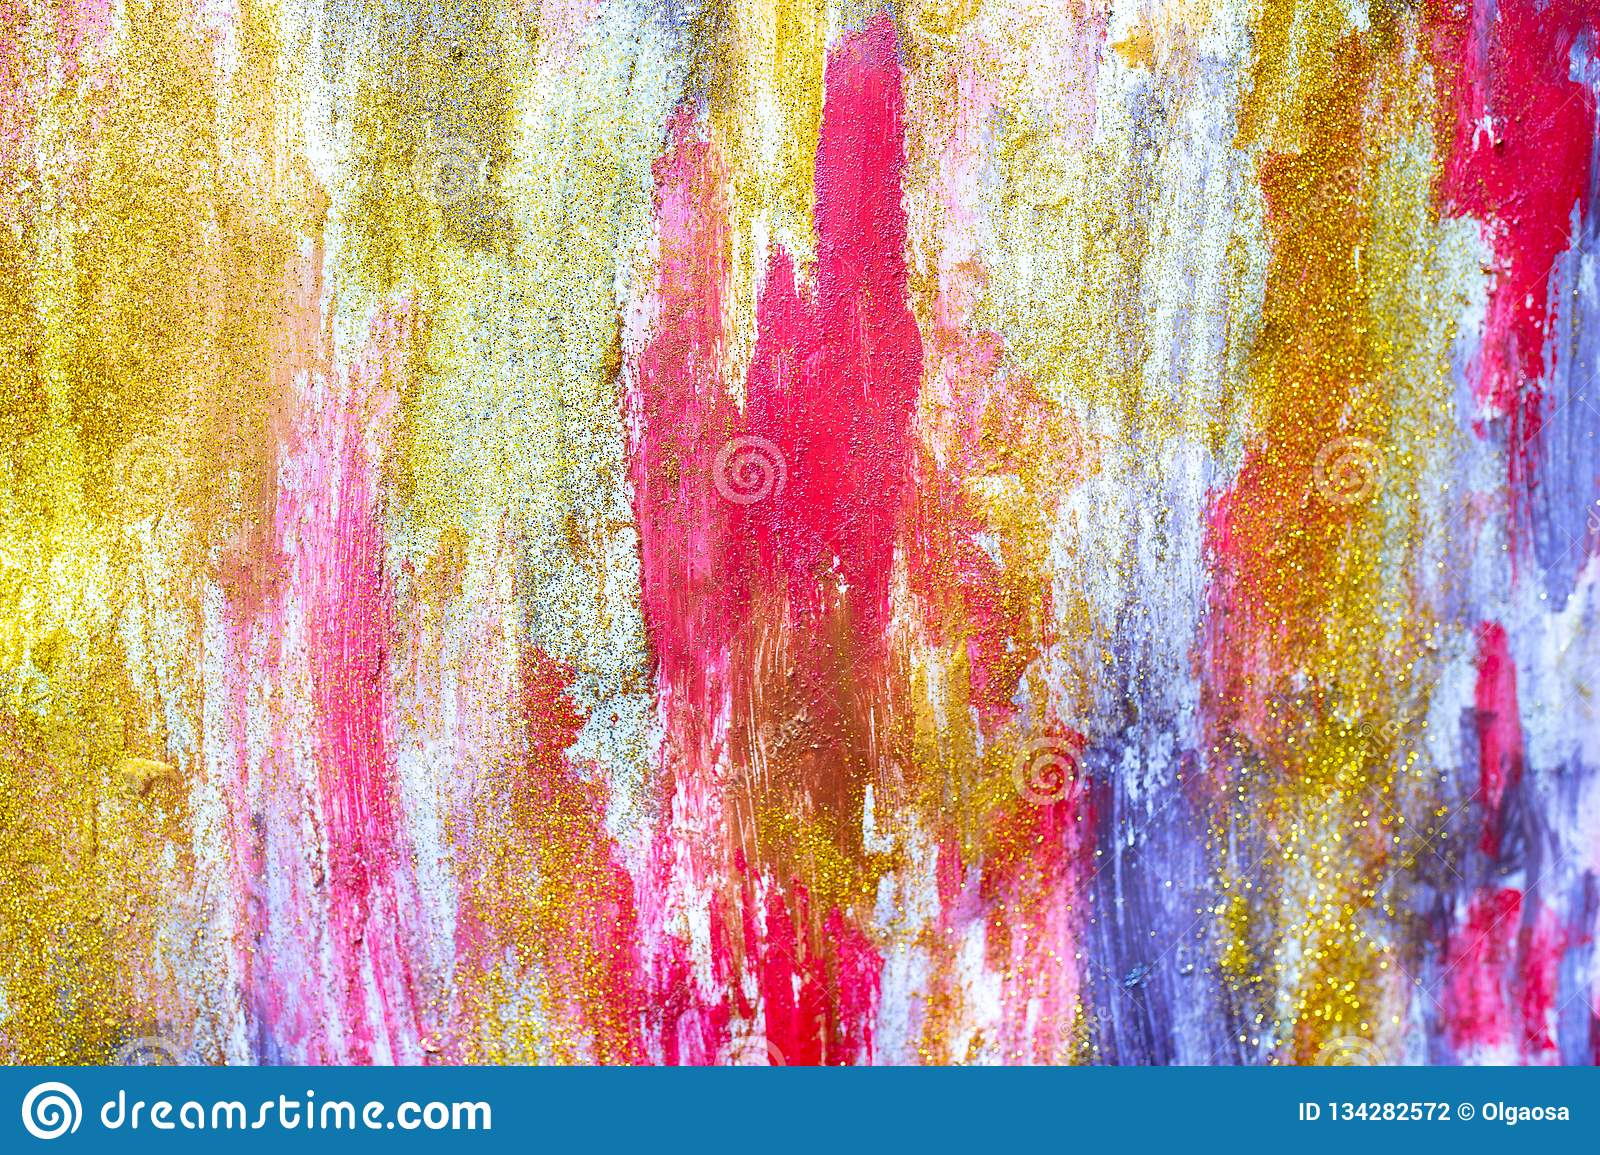 Bright Colours Painting Abstract Streams Of Paints On The Wall Stock Illustration